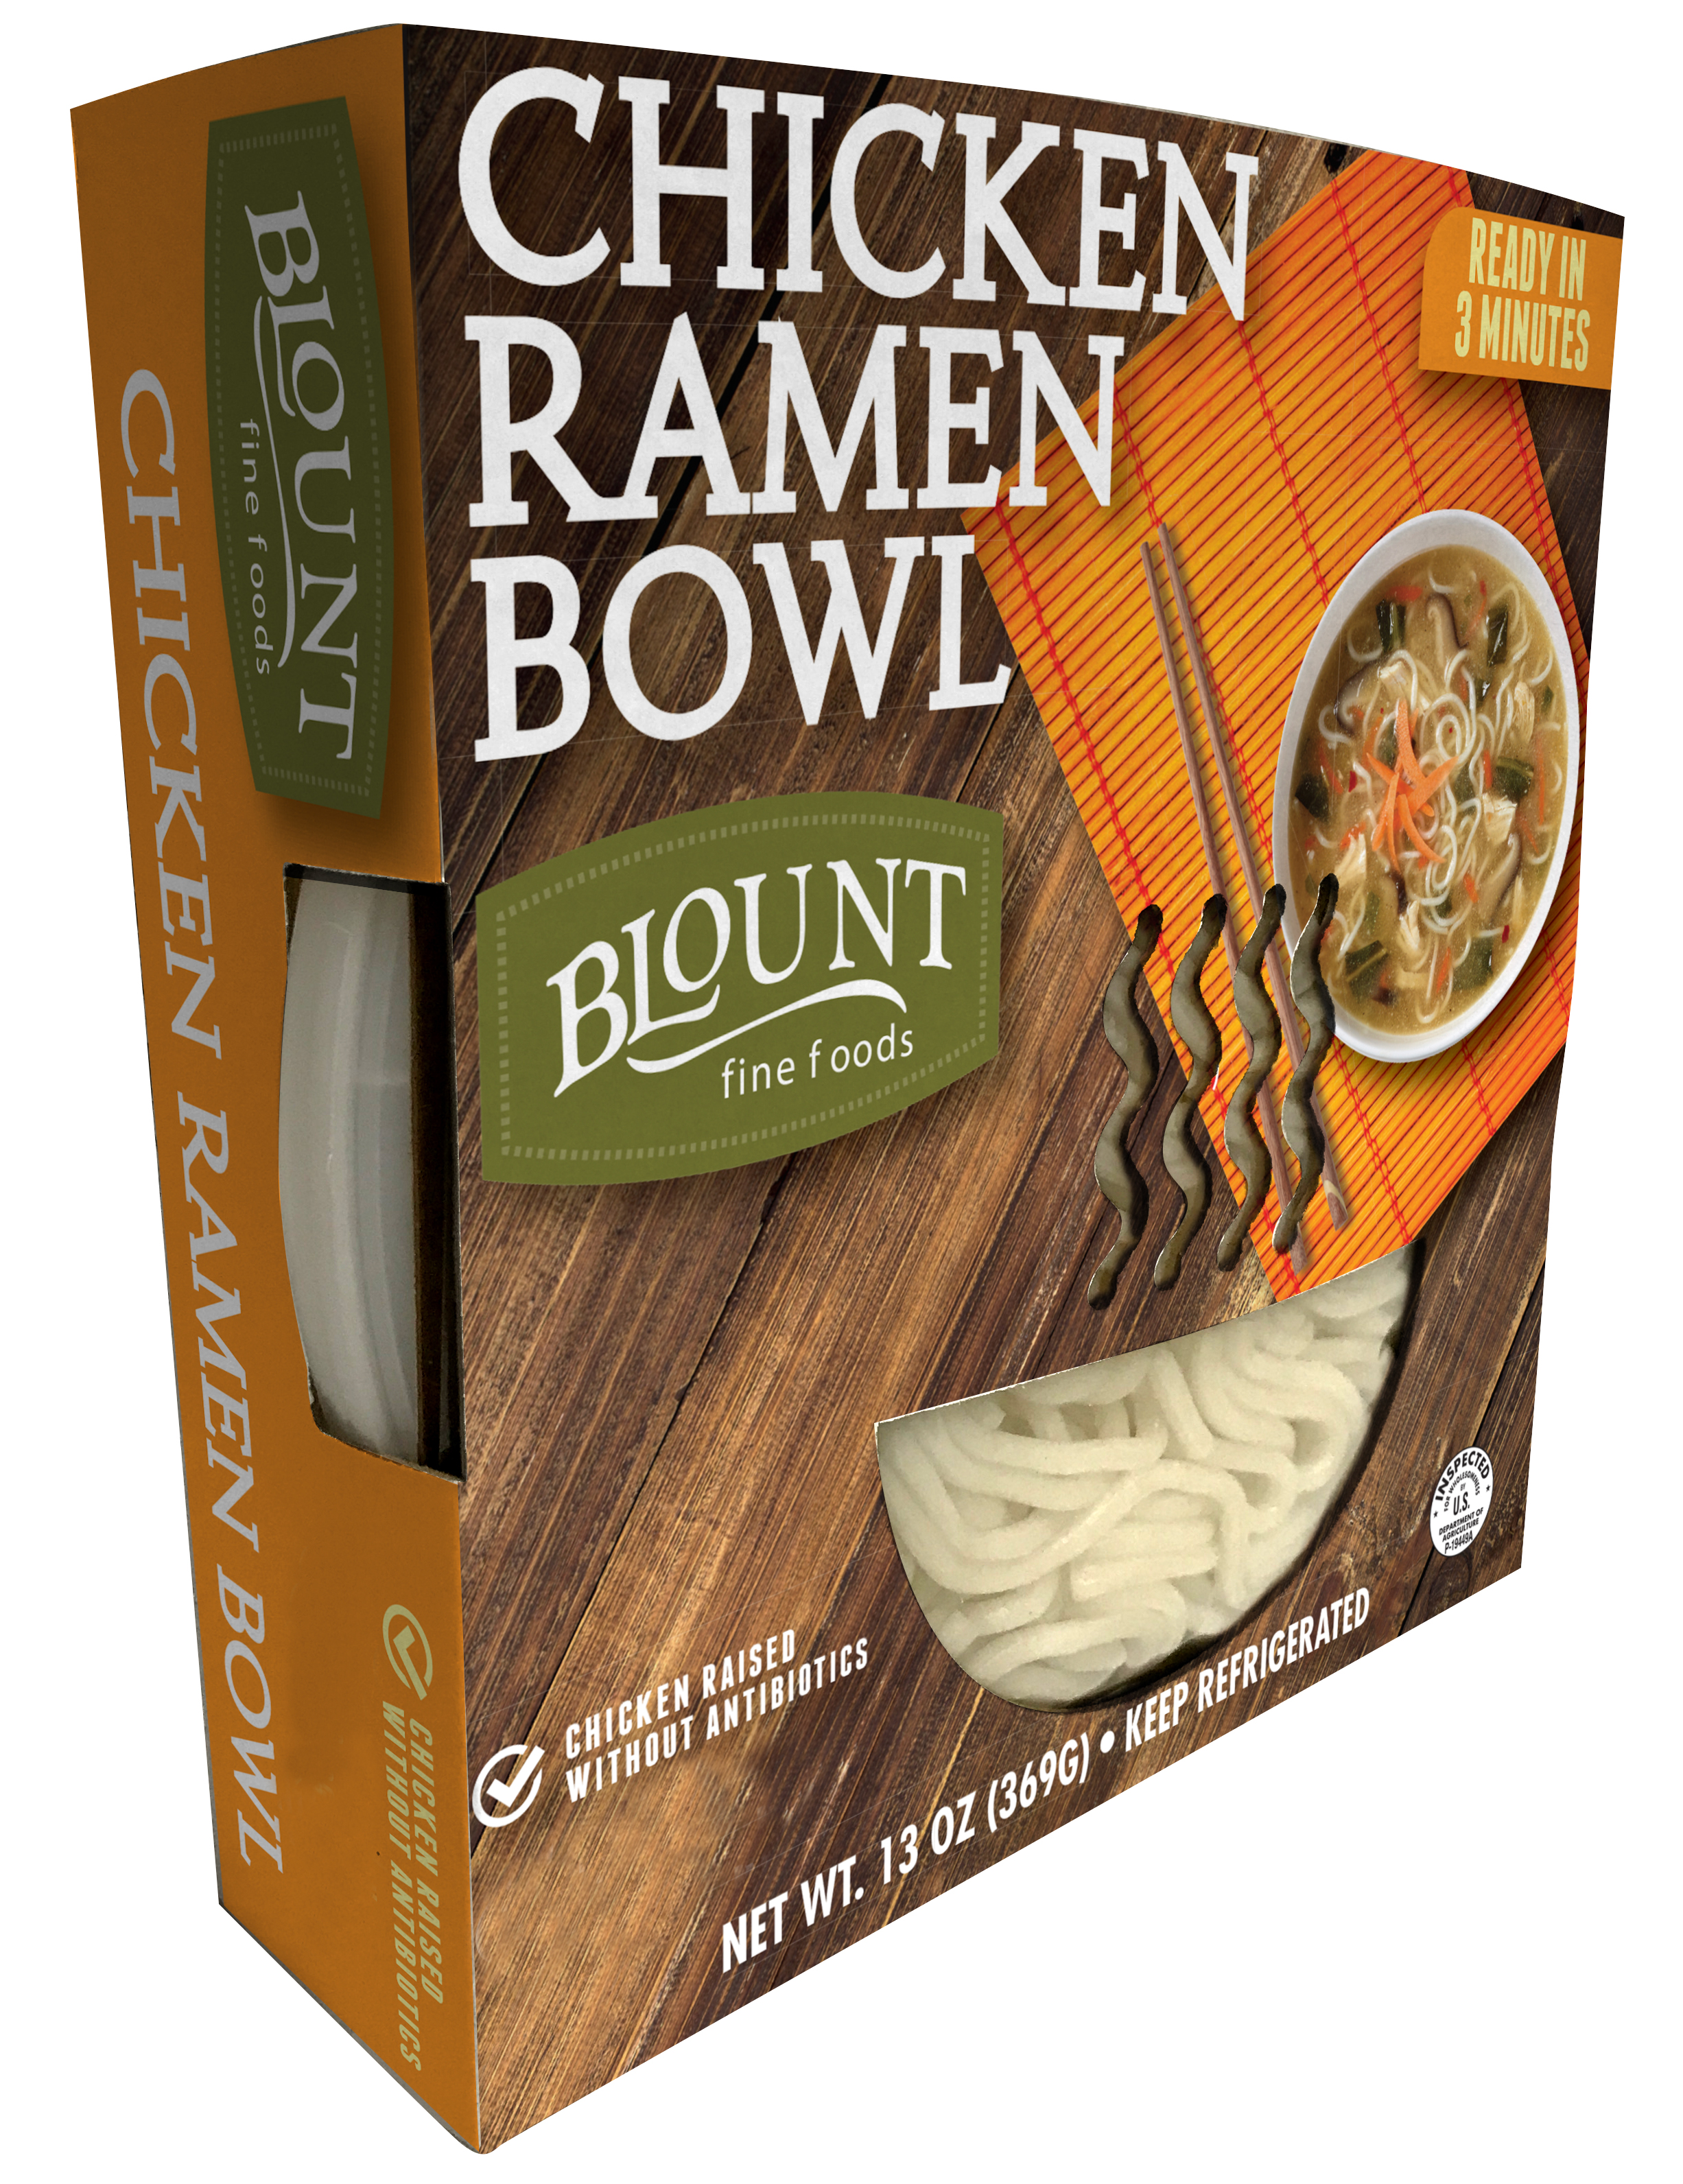 Blount chicken Ramen noodle bowl 12oz